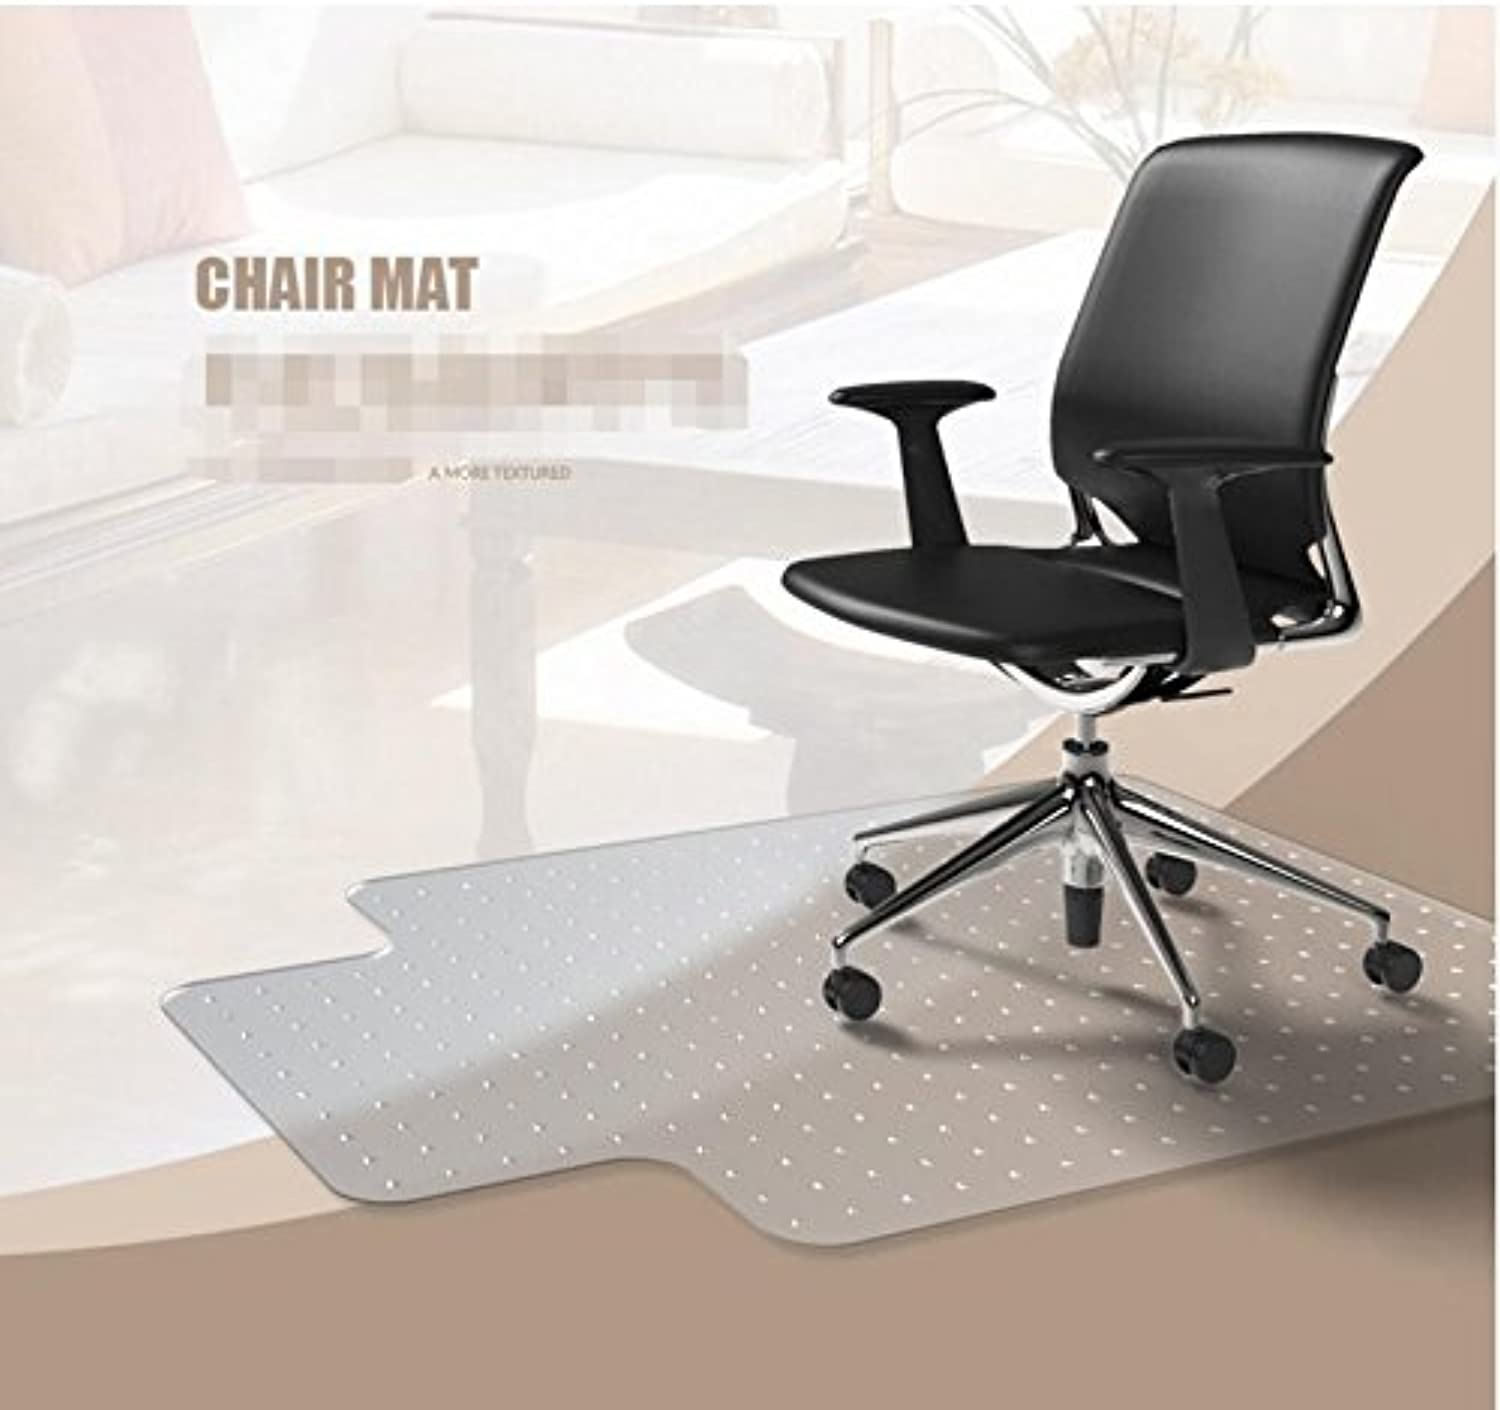 PVC mats Transparent Floor mat Non-Slip Wood Floor mats Predector Computer Chair pad Swivel Chair mat Office Chair mat-B 90x120cm(35x47inch)